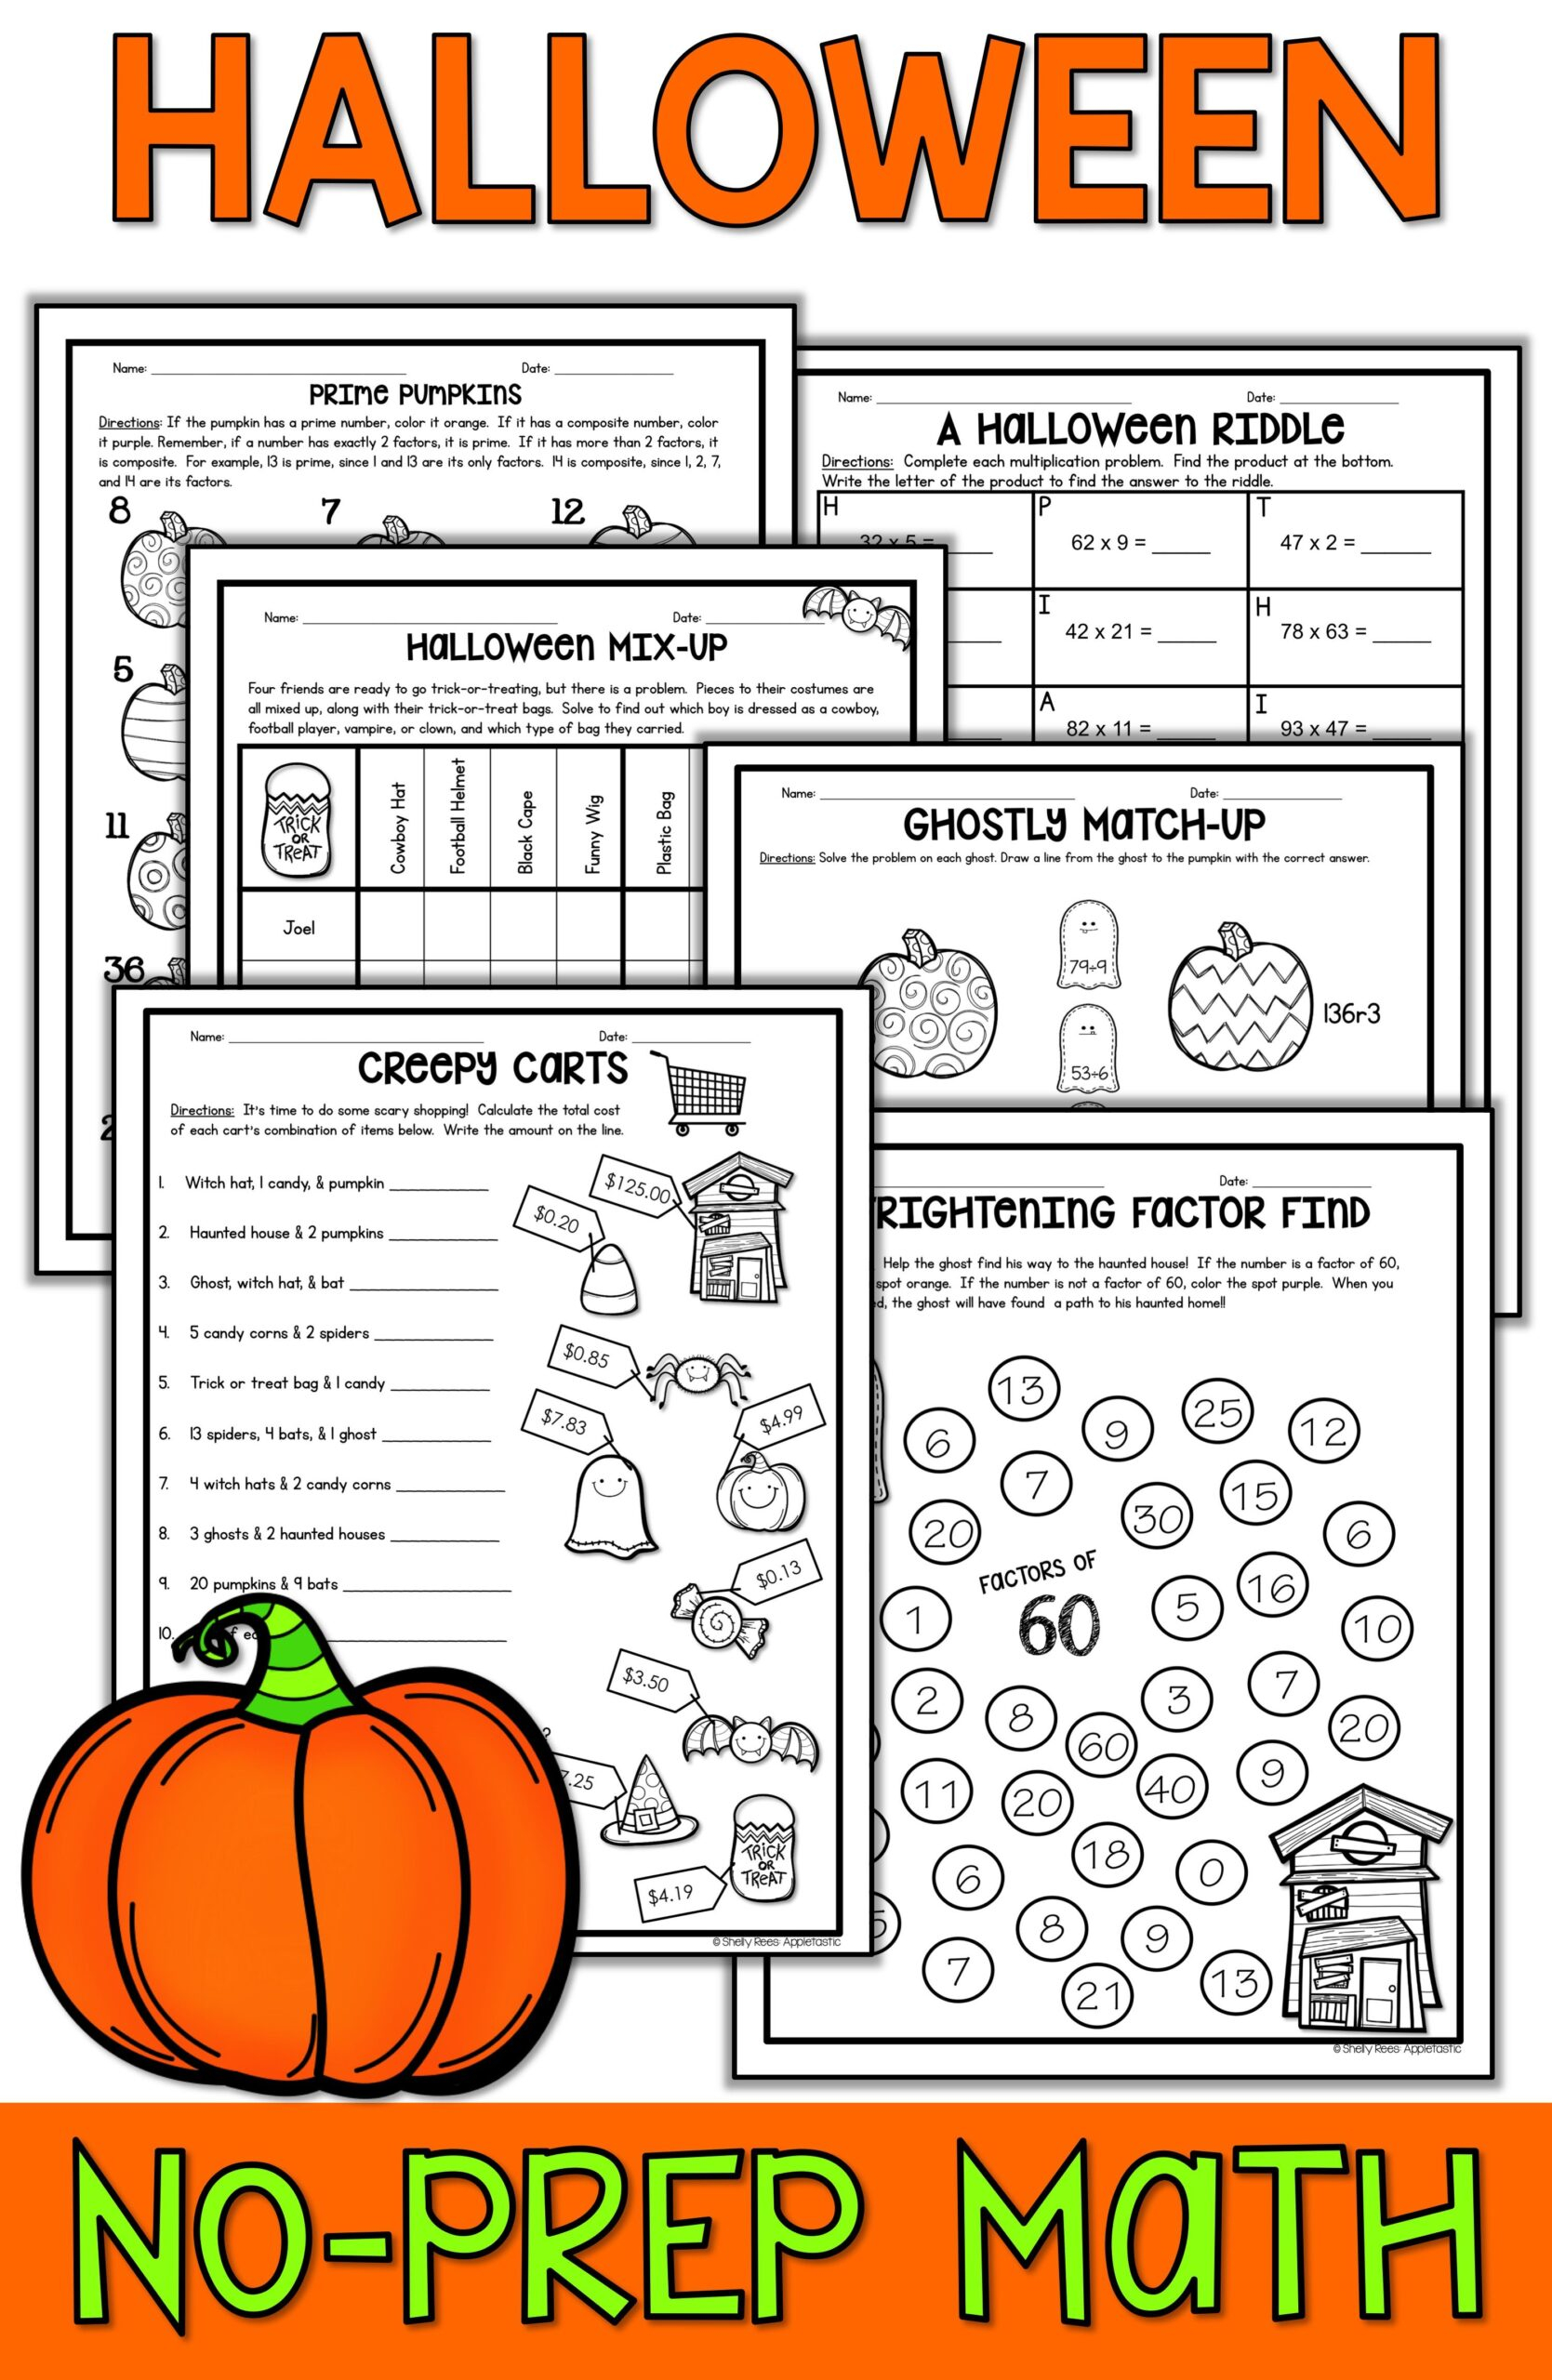 Halloween Math Worksheets Themed 3Rd Grade On The Web 5Th